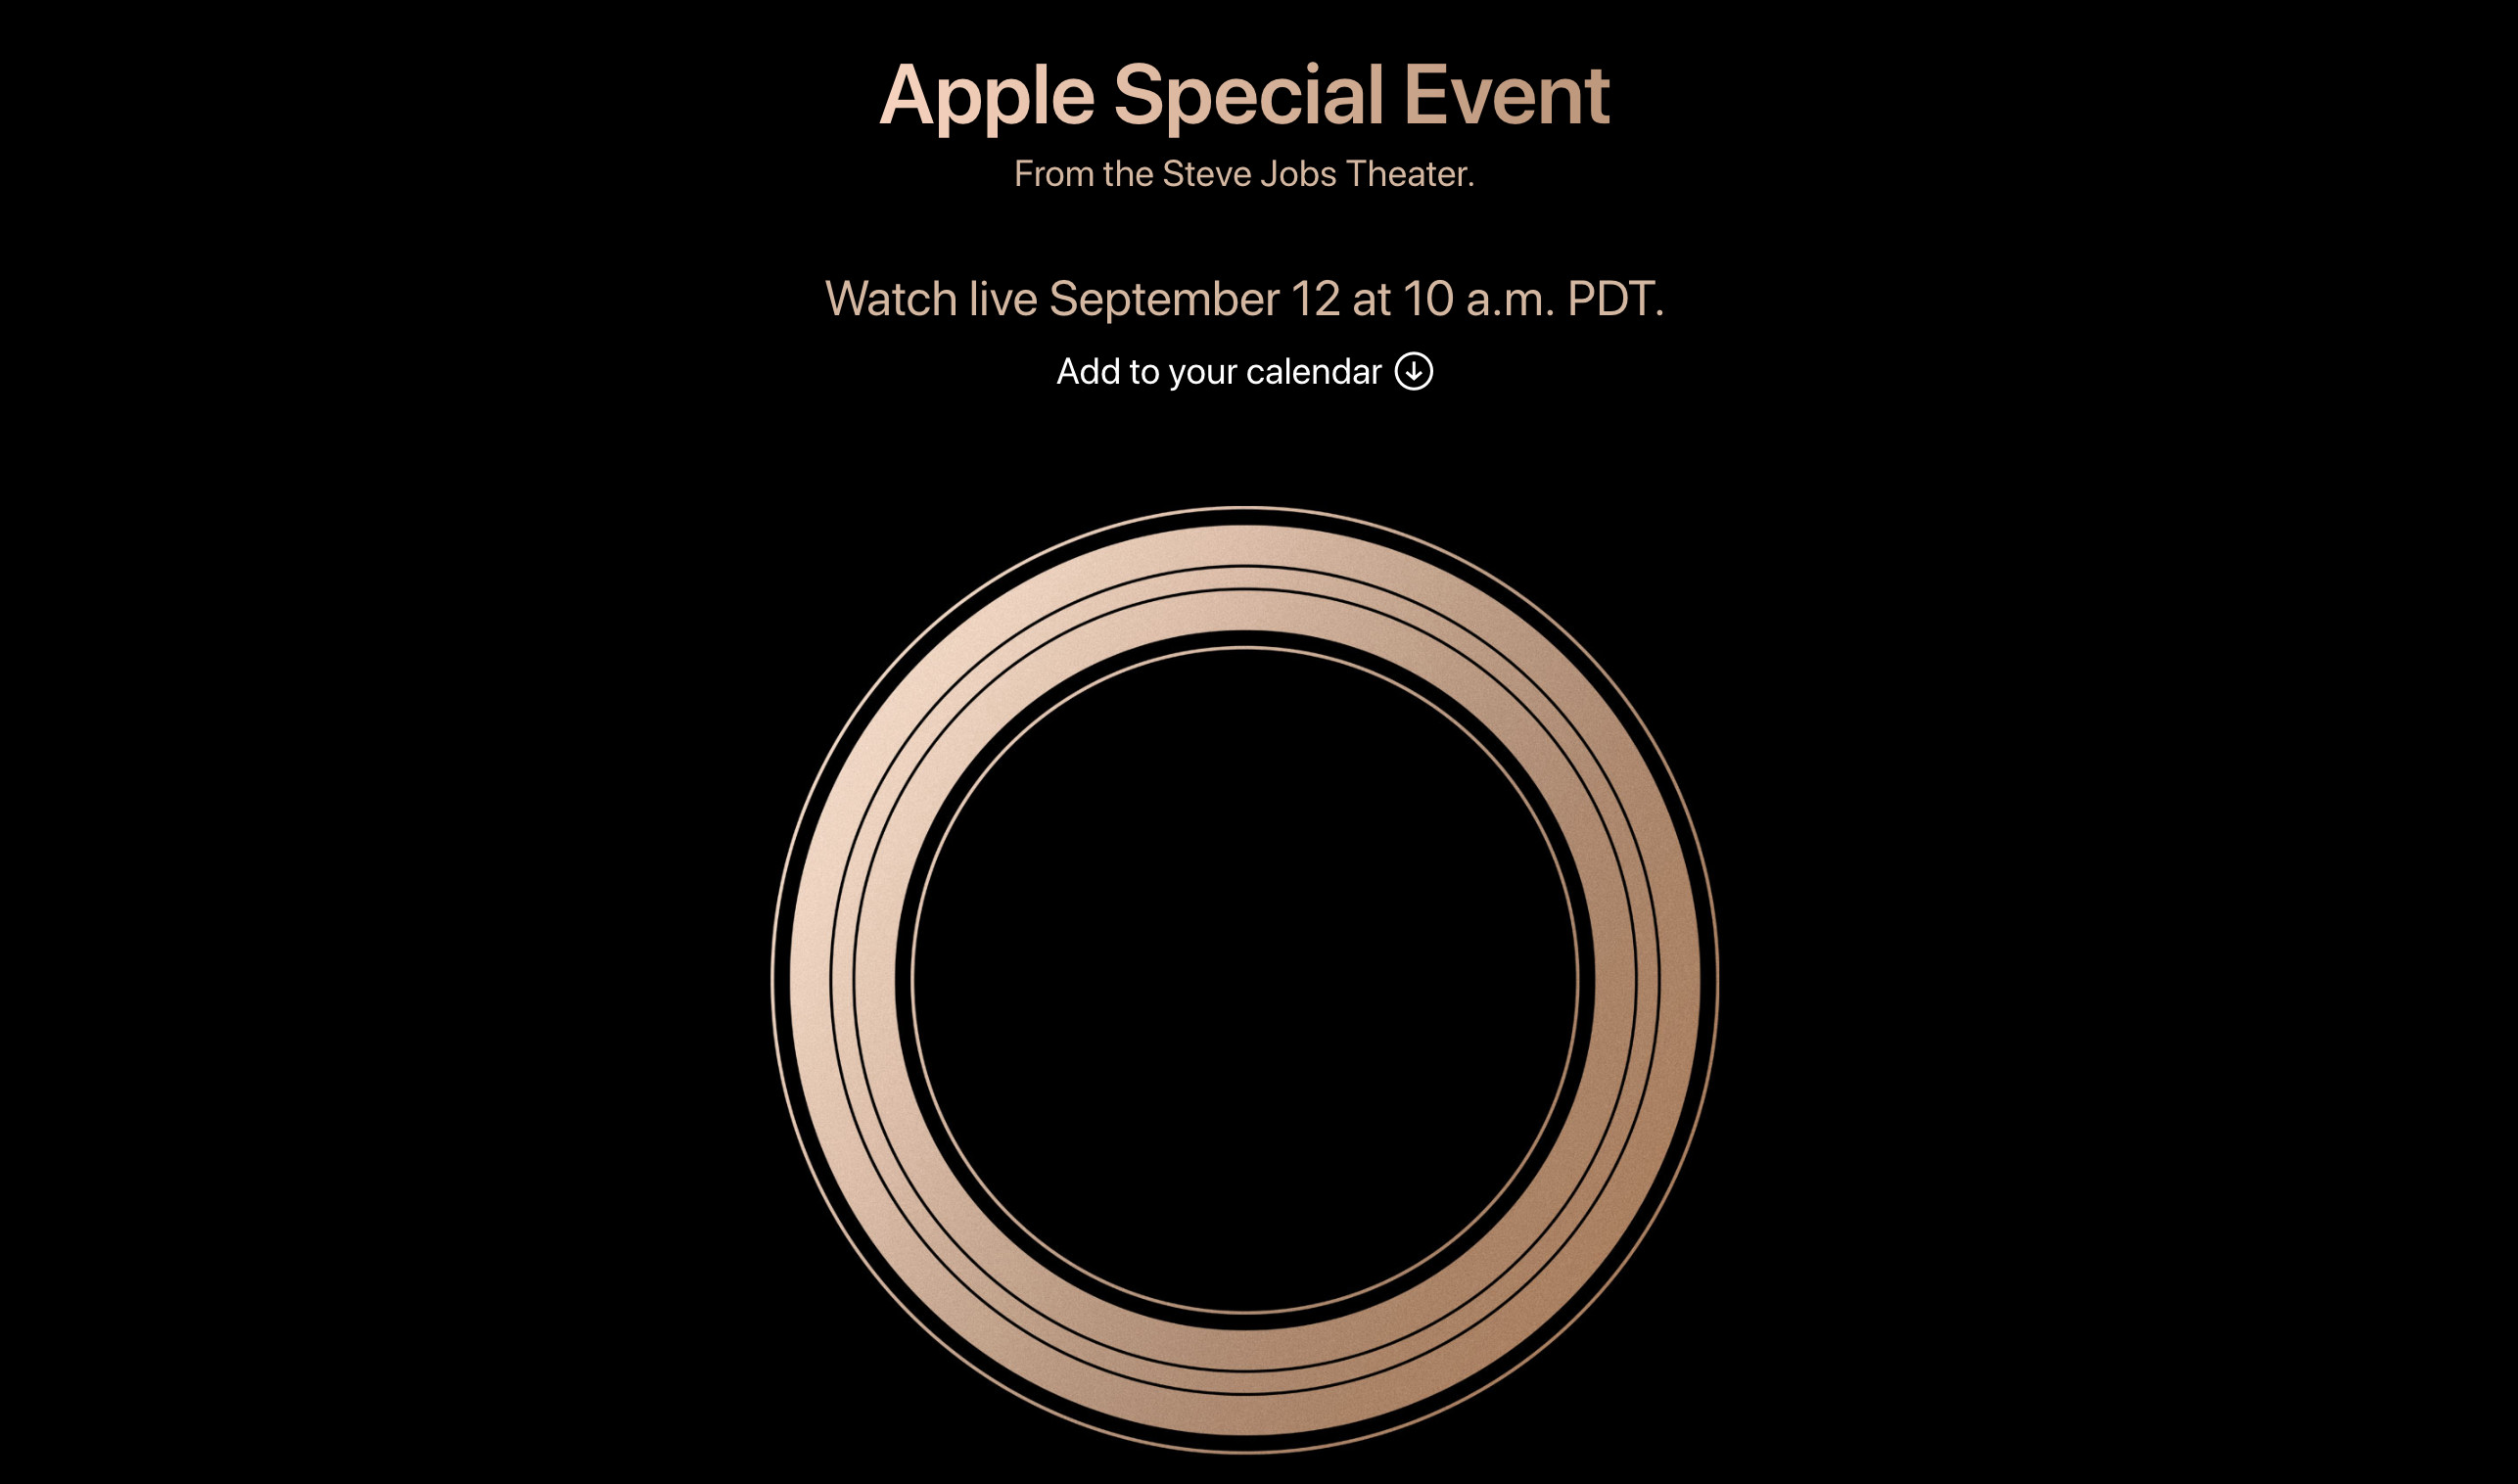 Apple Watch Series 4 Makes Its Debut at iPhone Event